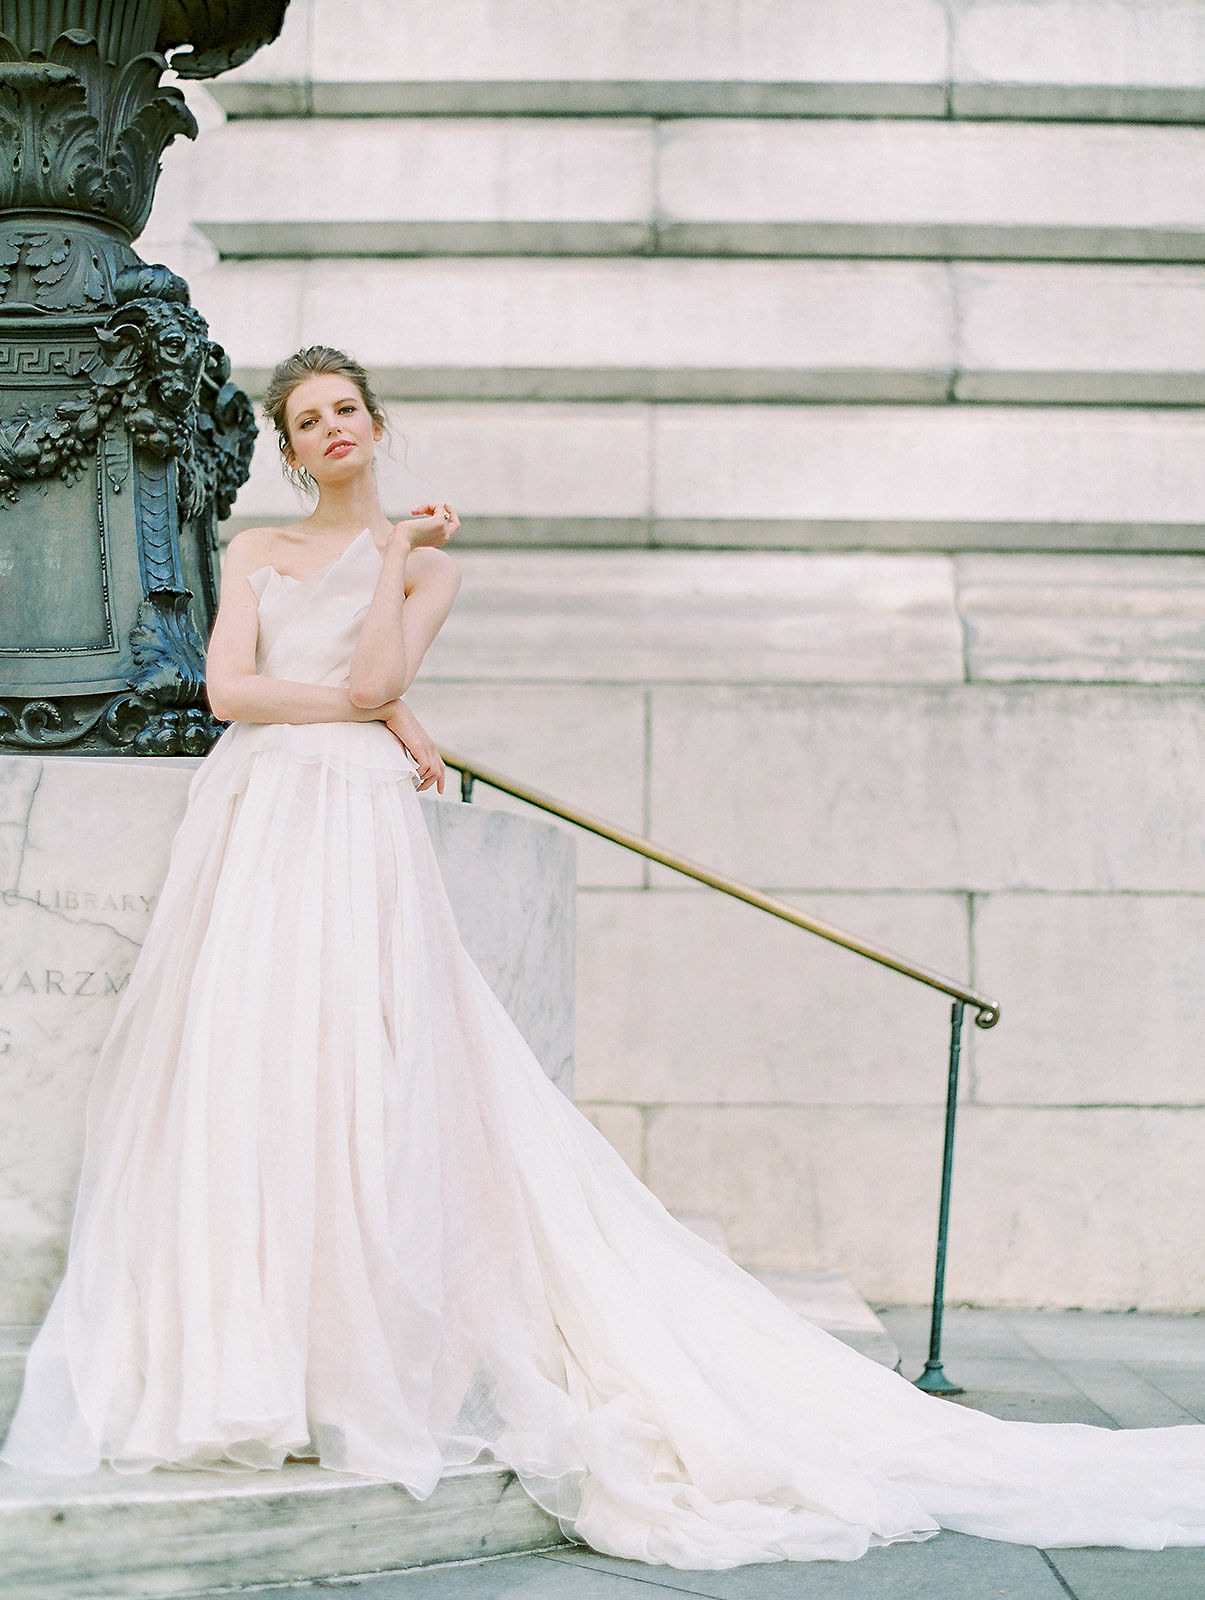 alla prima draped linen wedding gown at new york public library10.jpg